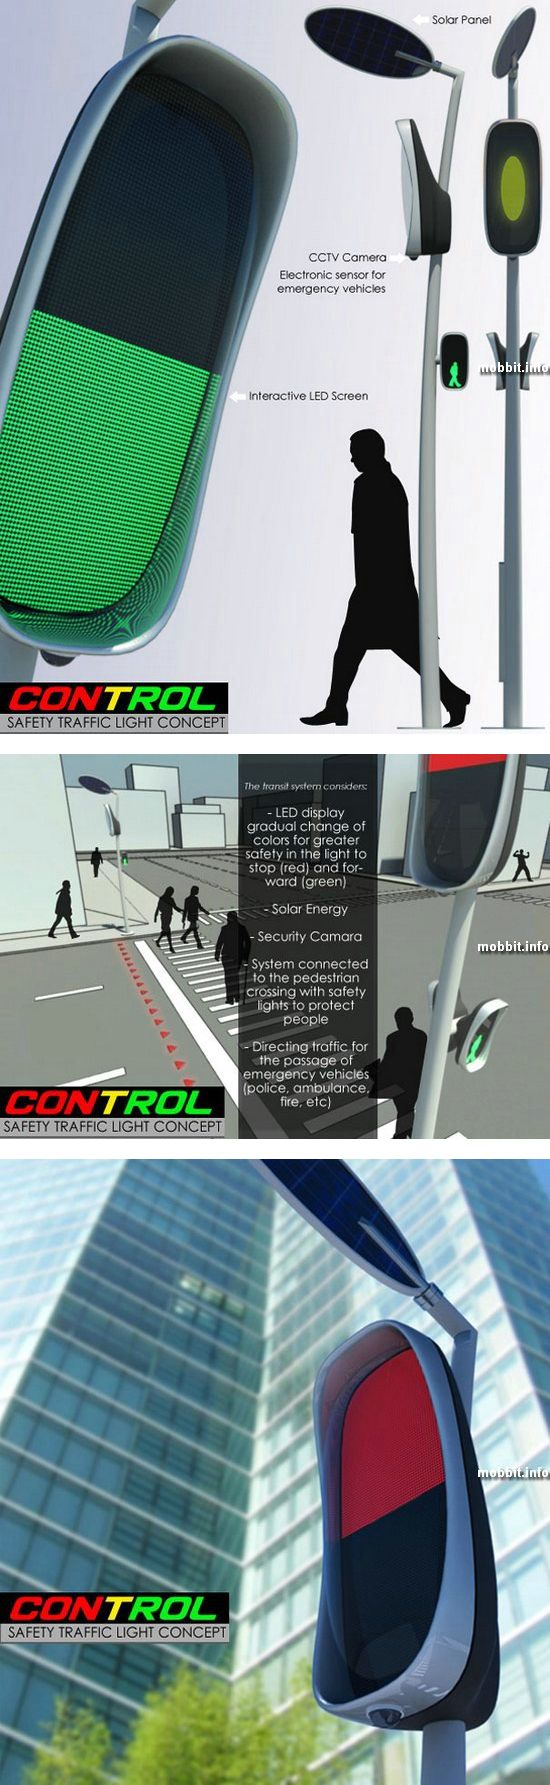 Control Safety